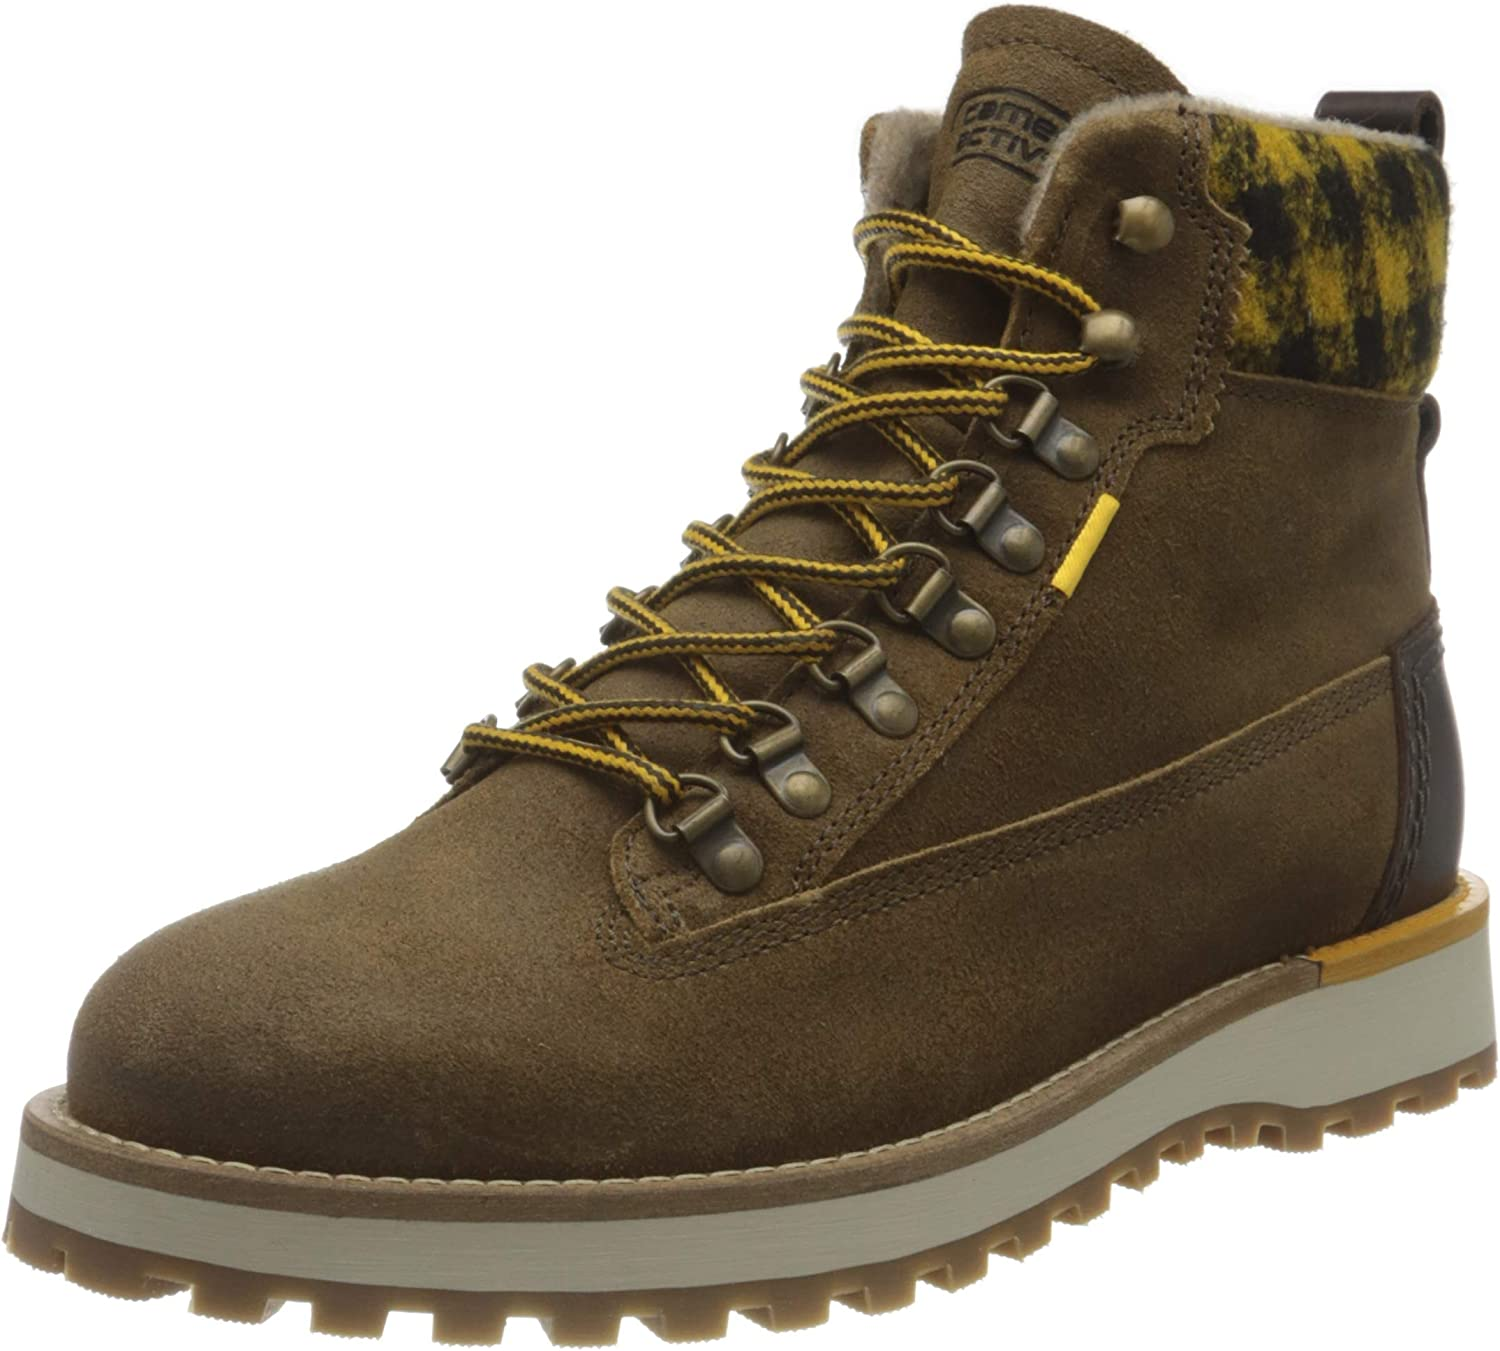 camel active Men's Classic Boot Shipping included Fashion 7.5 Gifts US